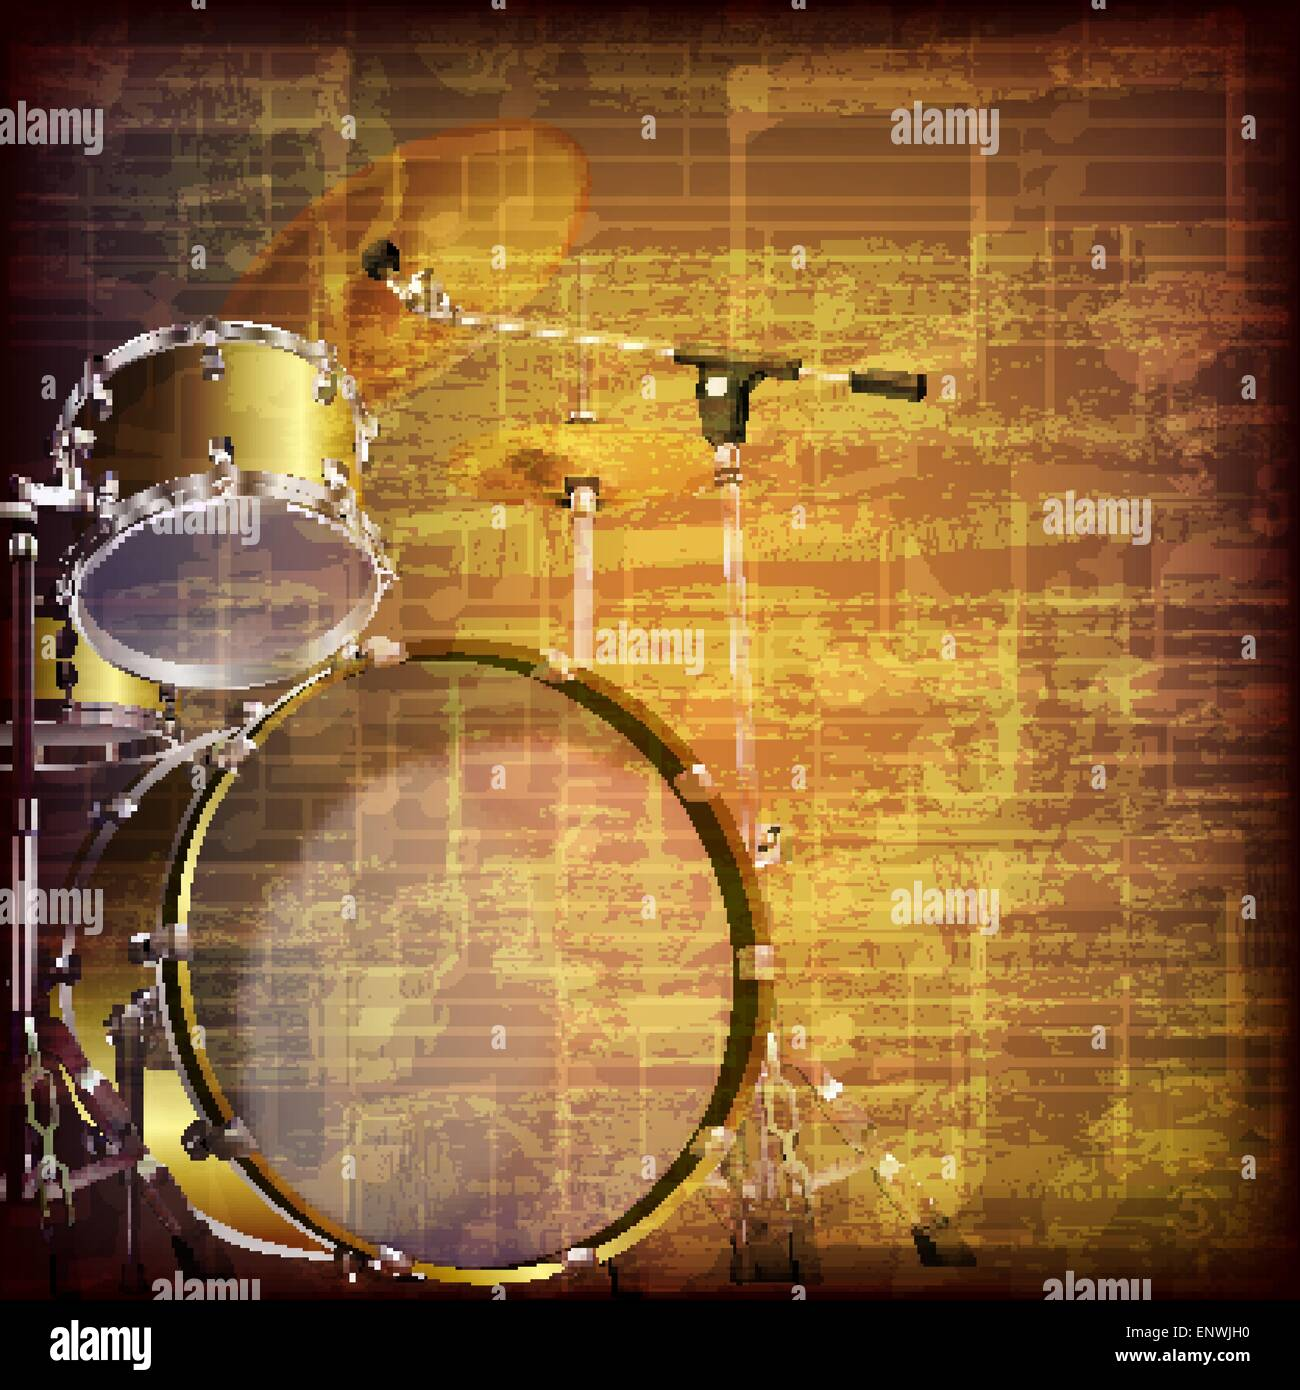 abstract grunge brown cracked music symbols vintage background with ...